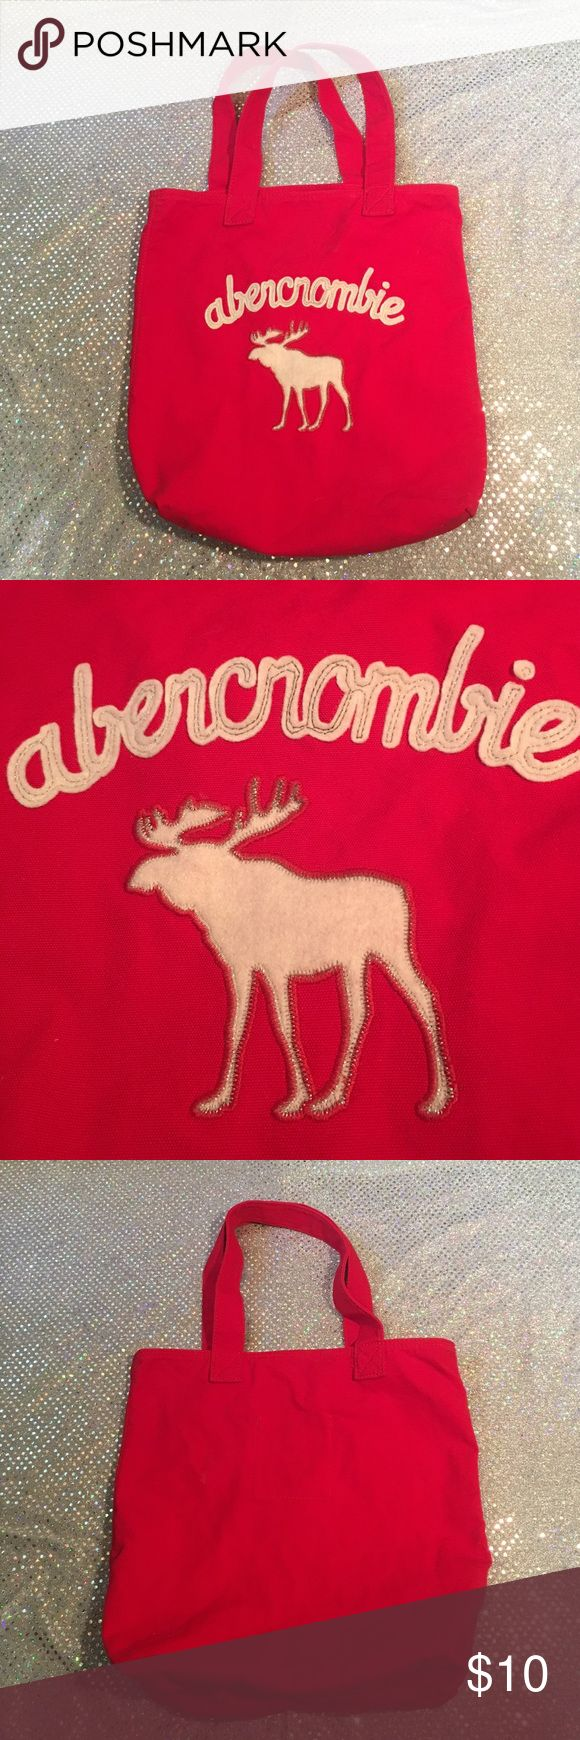 ABERCROMBIE AND FITCH TOTE BAG EXCELLENT condition brilliant red Abercrombie and Fitch kids tote bag. Has inner storage pocket with emblem. Thanks for checking out my closet 🎊HAPPY POSHING🎊😄 abercrombie kids Accessories Bags